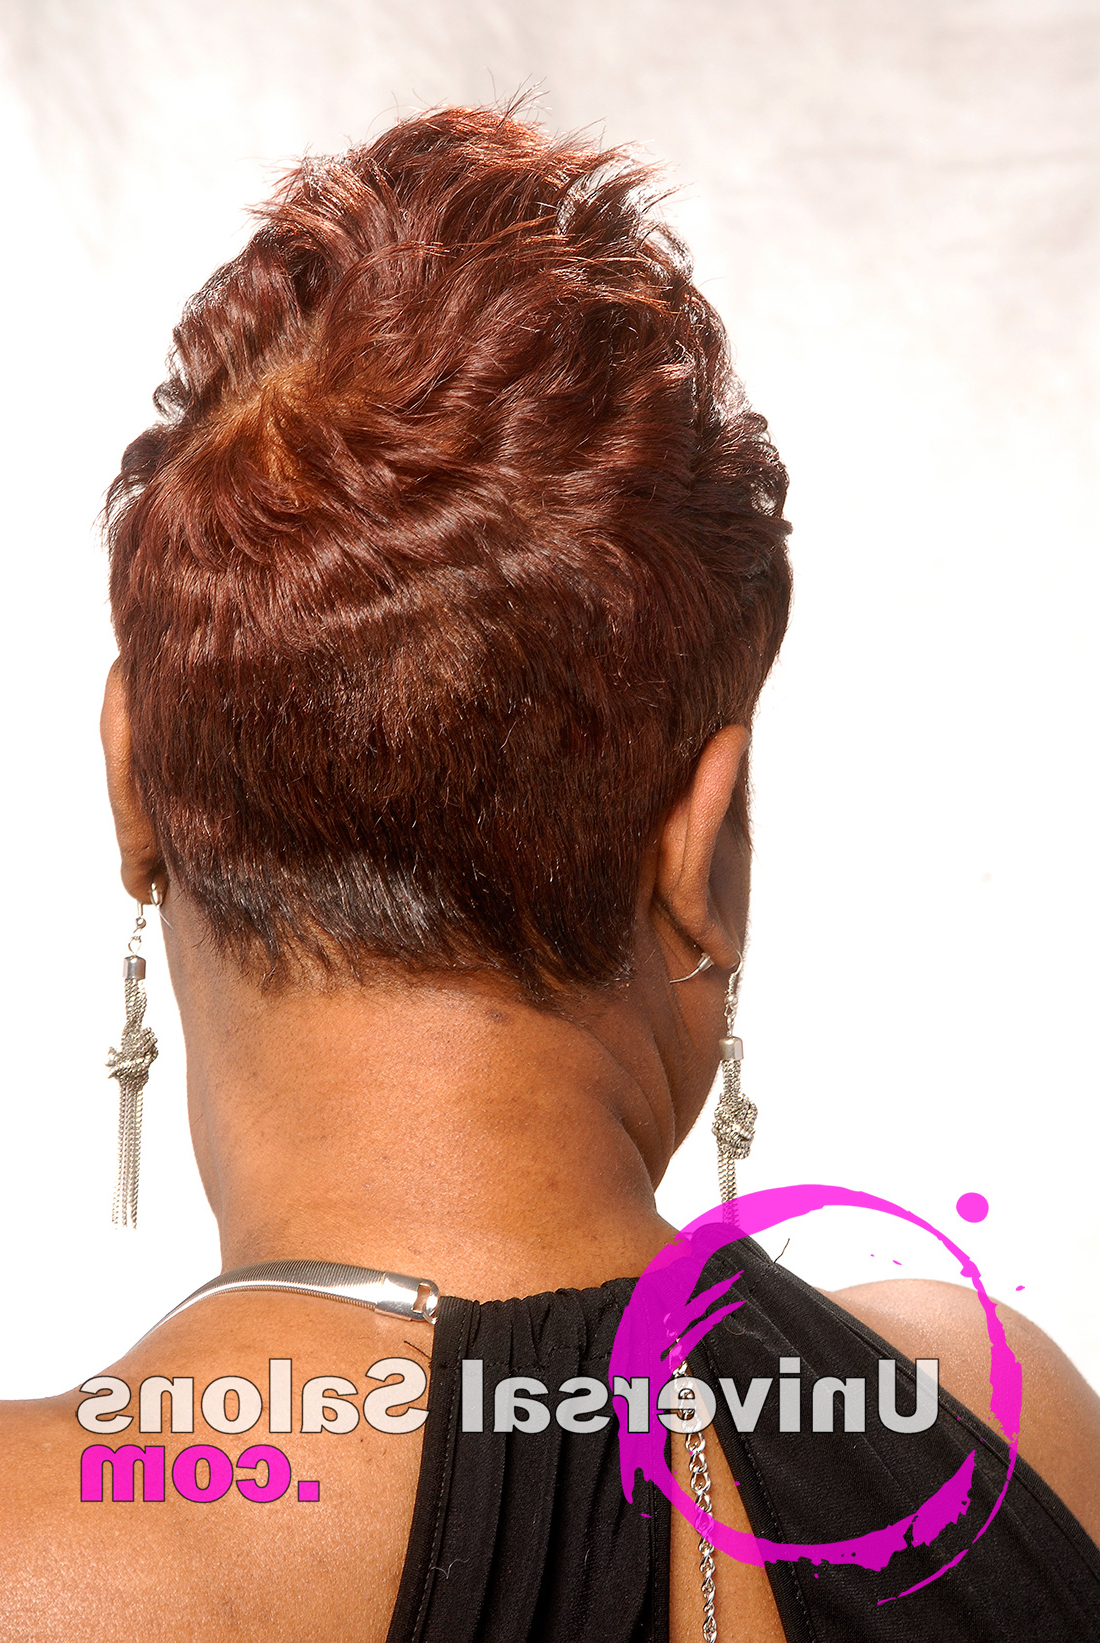 Short Spiked Hair Cut For Black Women From Dre' Ramseur Intended For Short Spiked Haircuts (View 10 of 20)